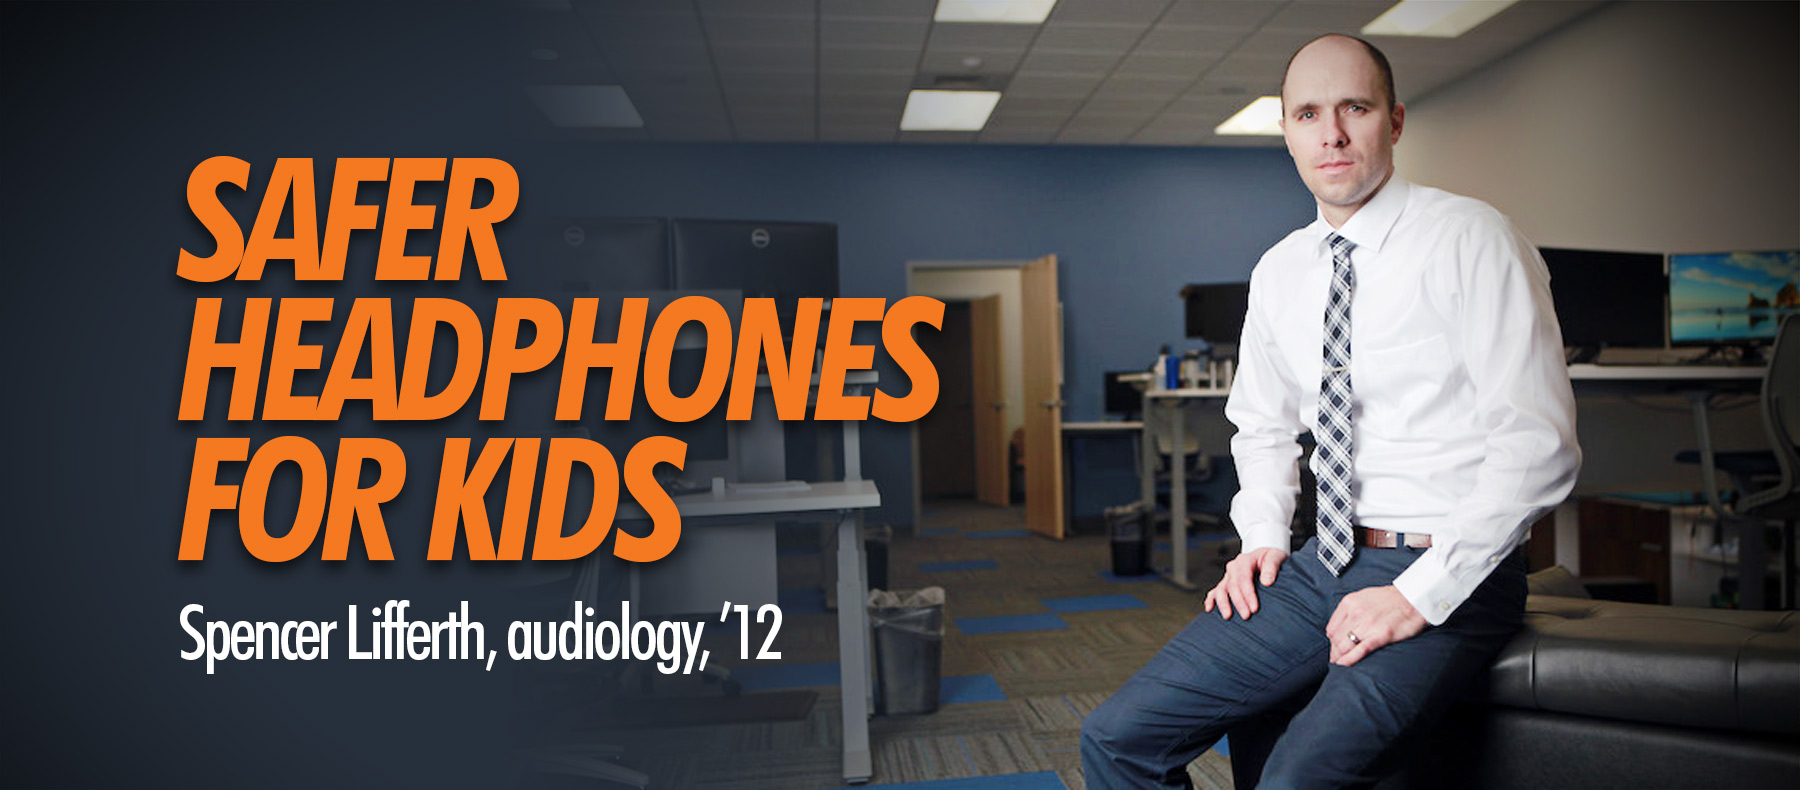 Safer Headphones for Kids - Spencer Lifferth, audiology, '12